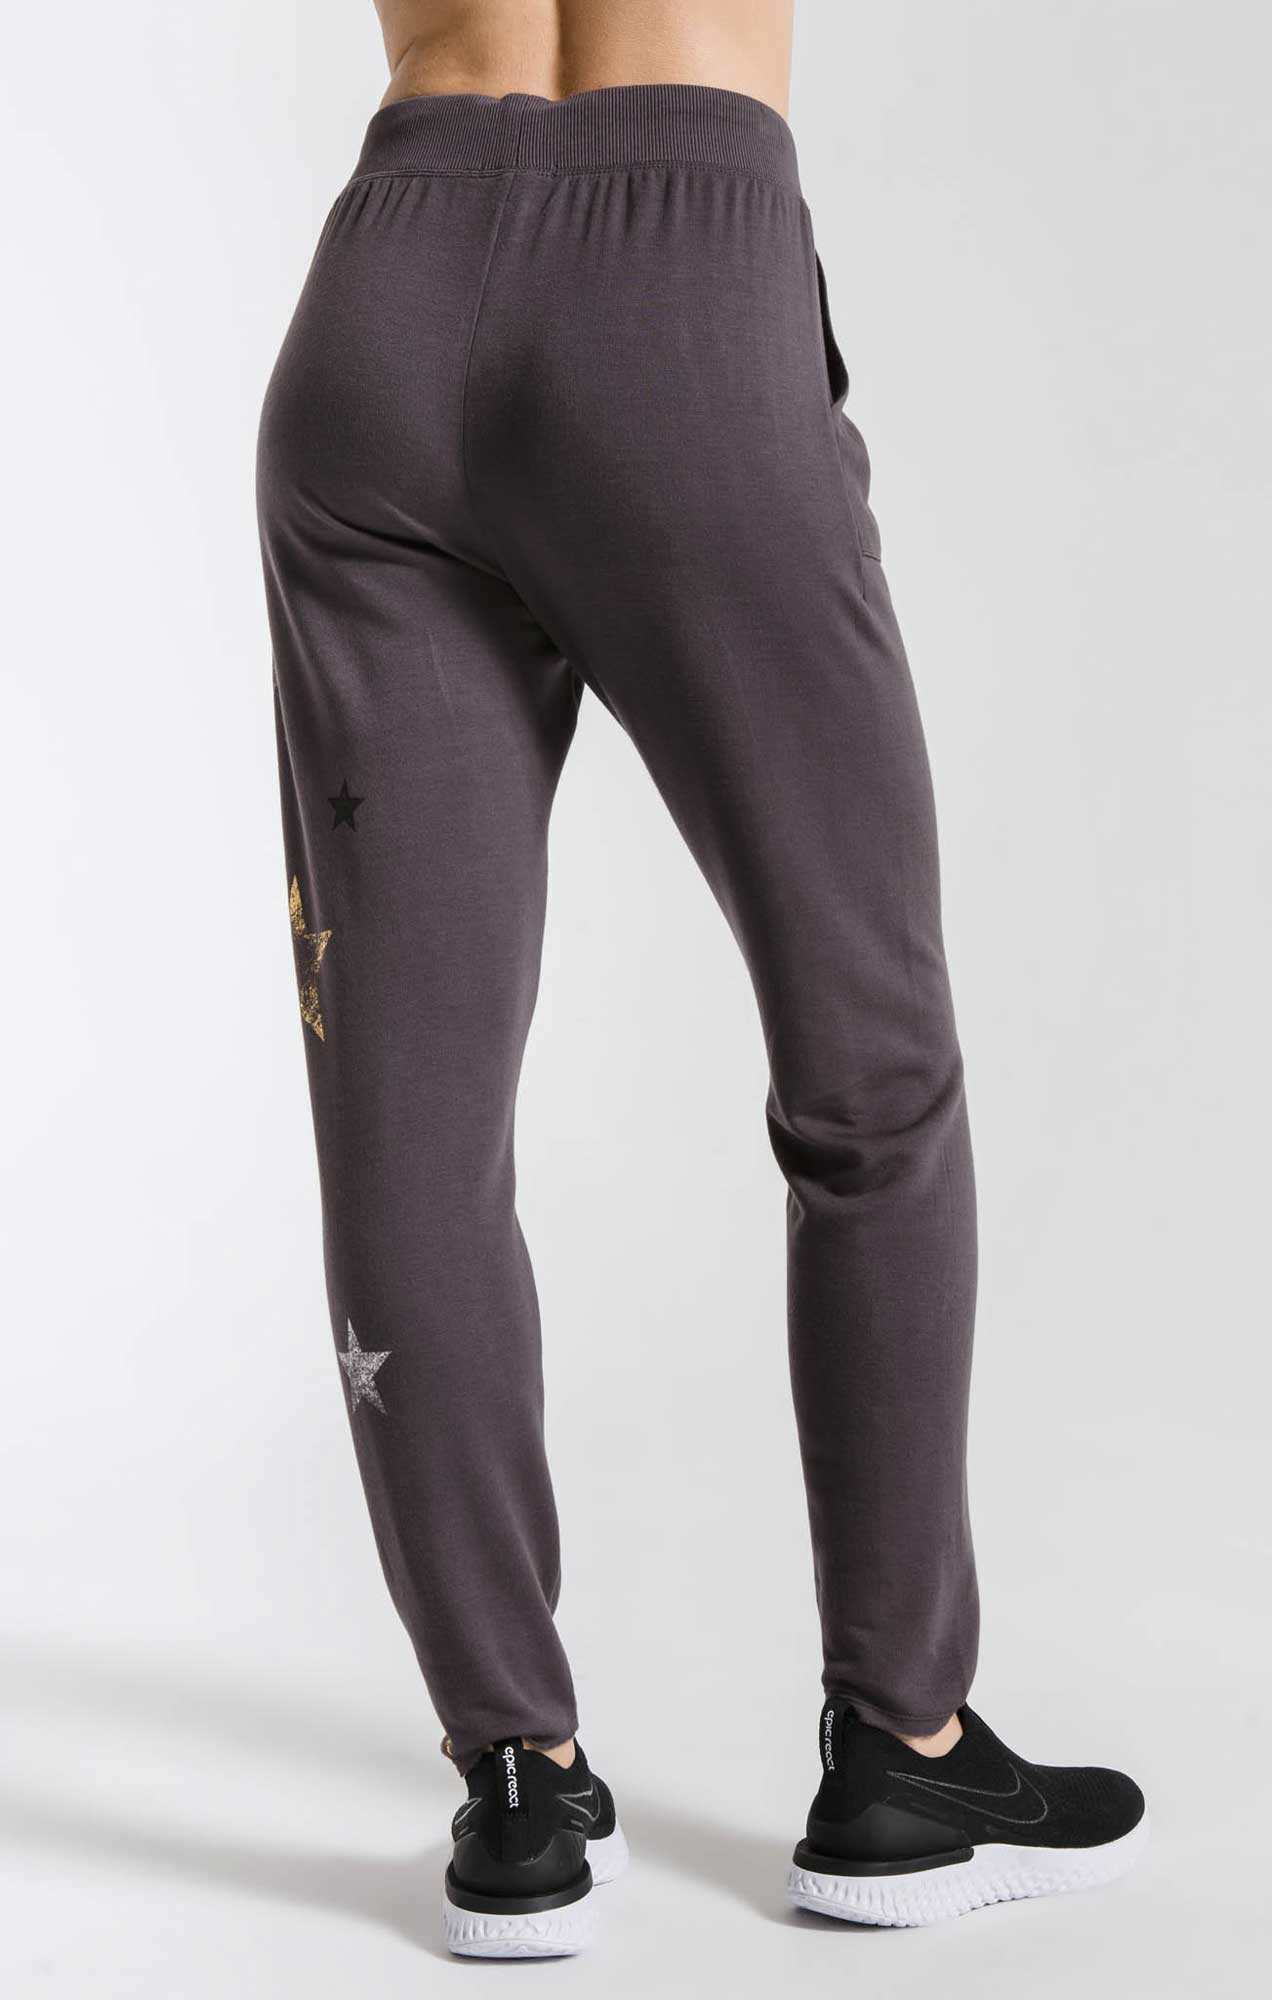 Pants The Foiled Star Jogger Pant Magnet